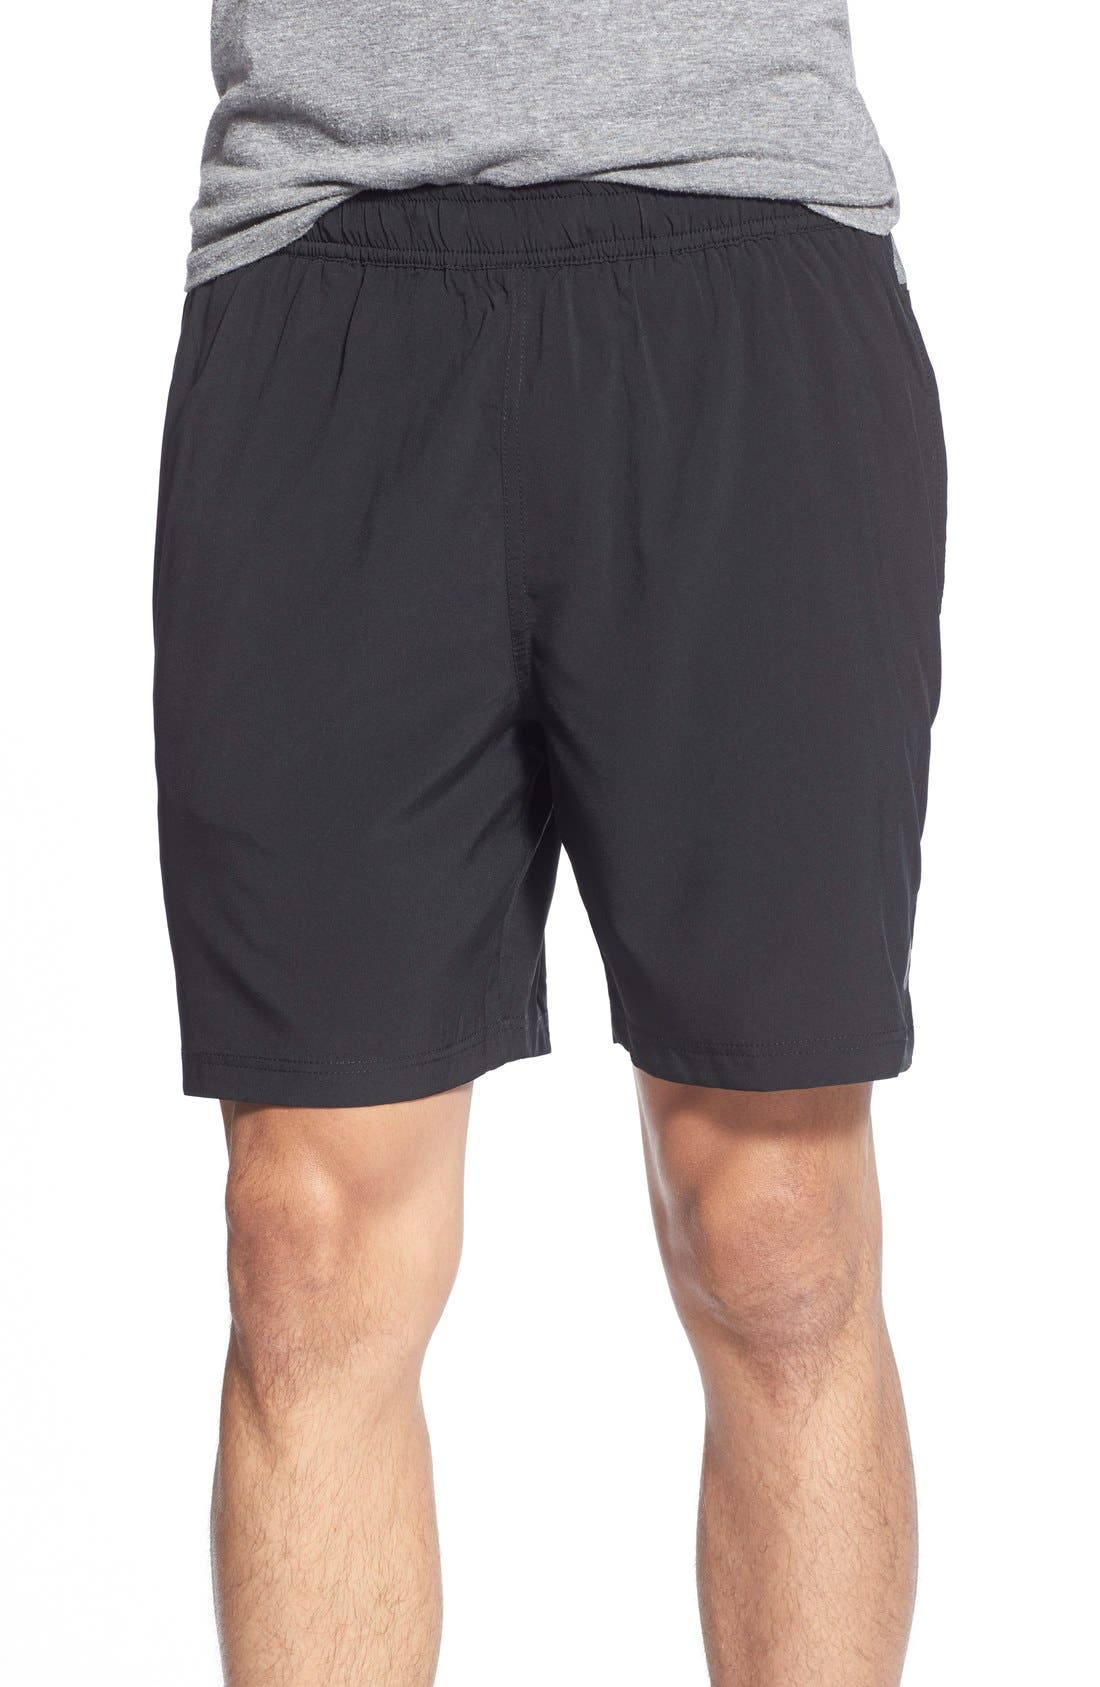 ATHLETIC RECON '6.5' Stretch Woven Performance Shorts, Main, color, 001